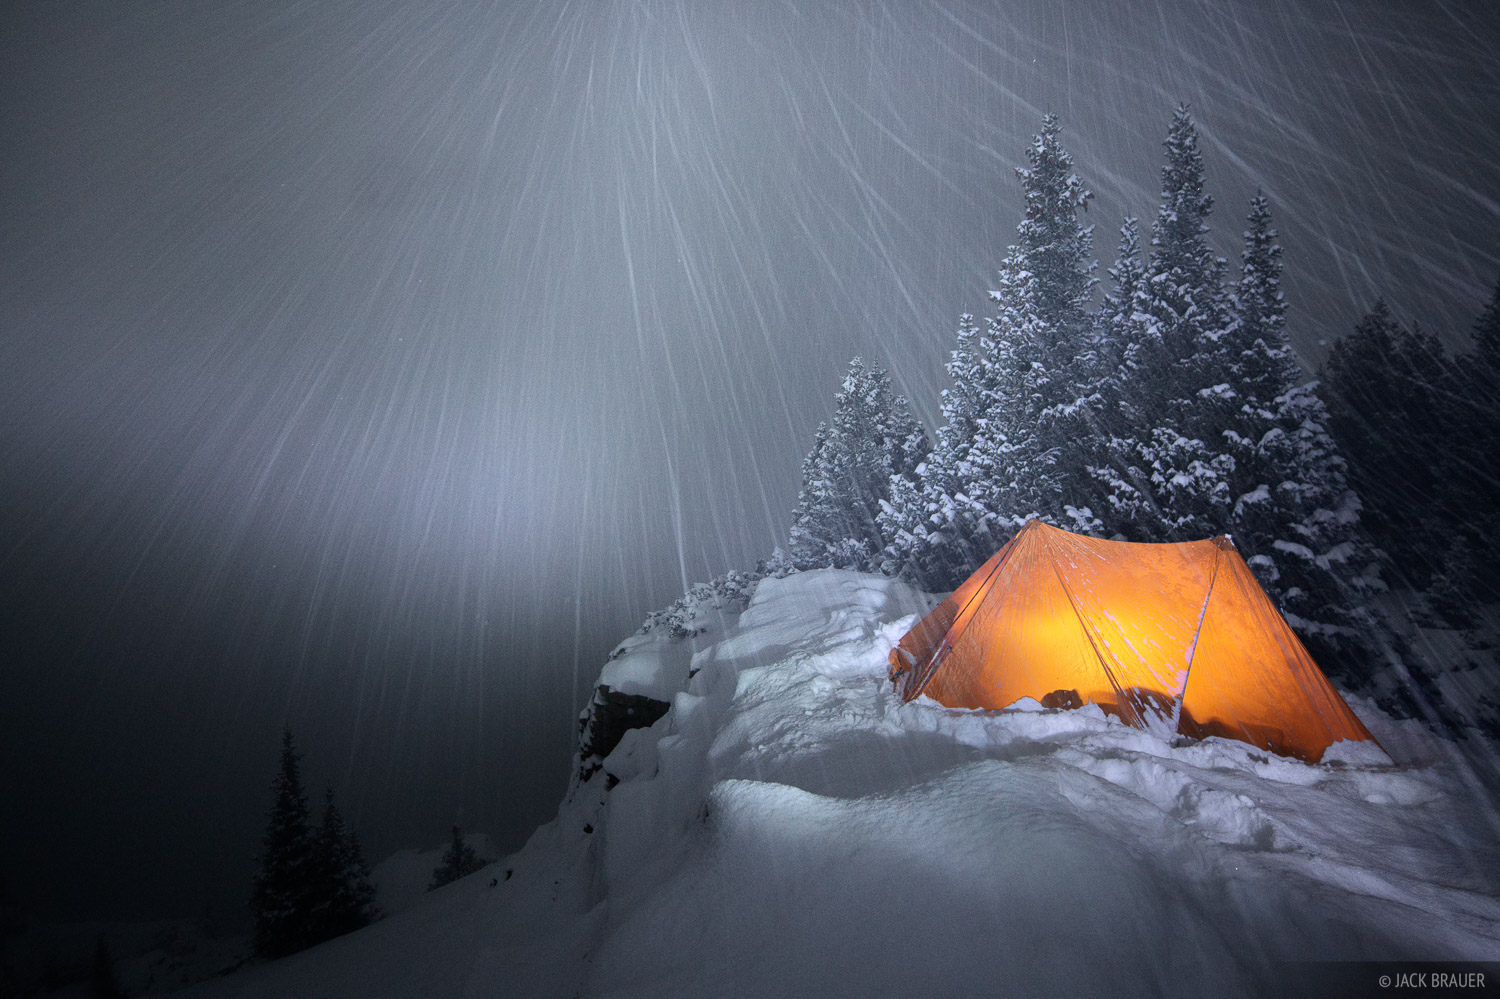 Snowy night in my winter tent.